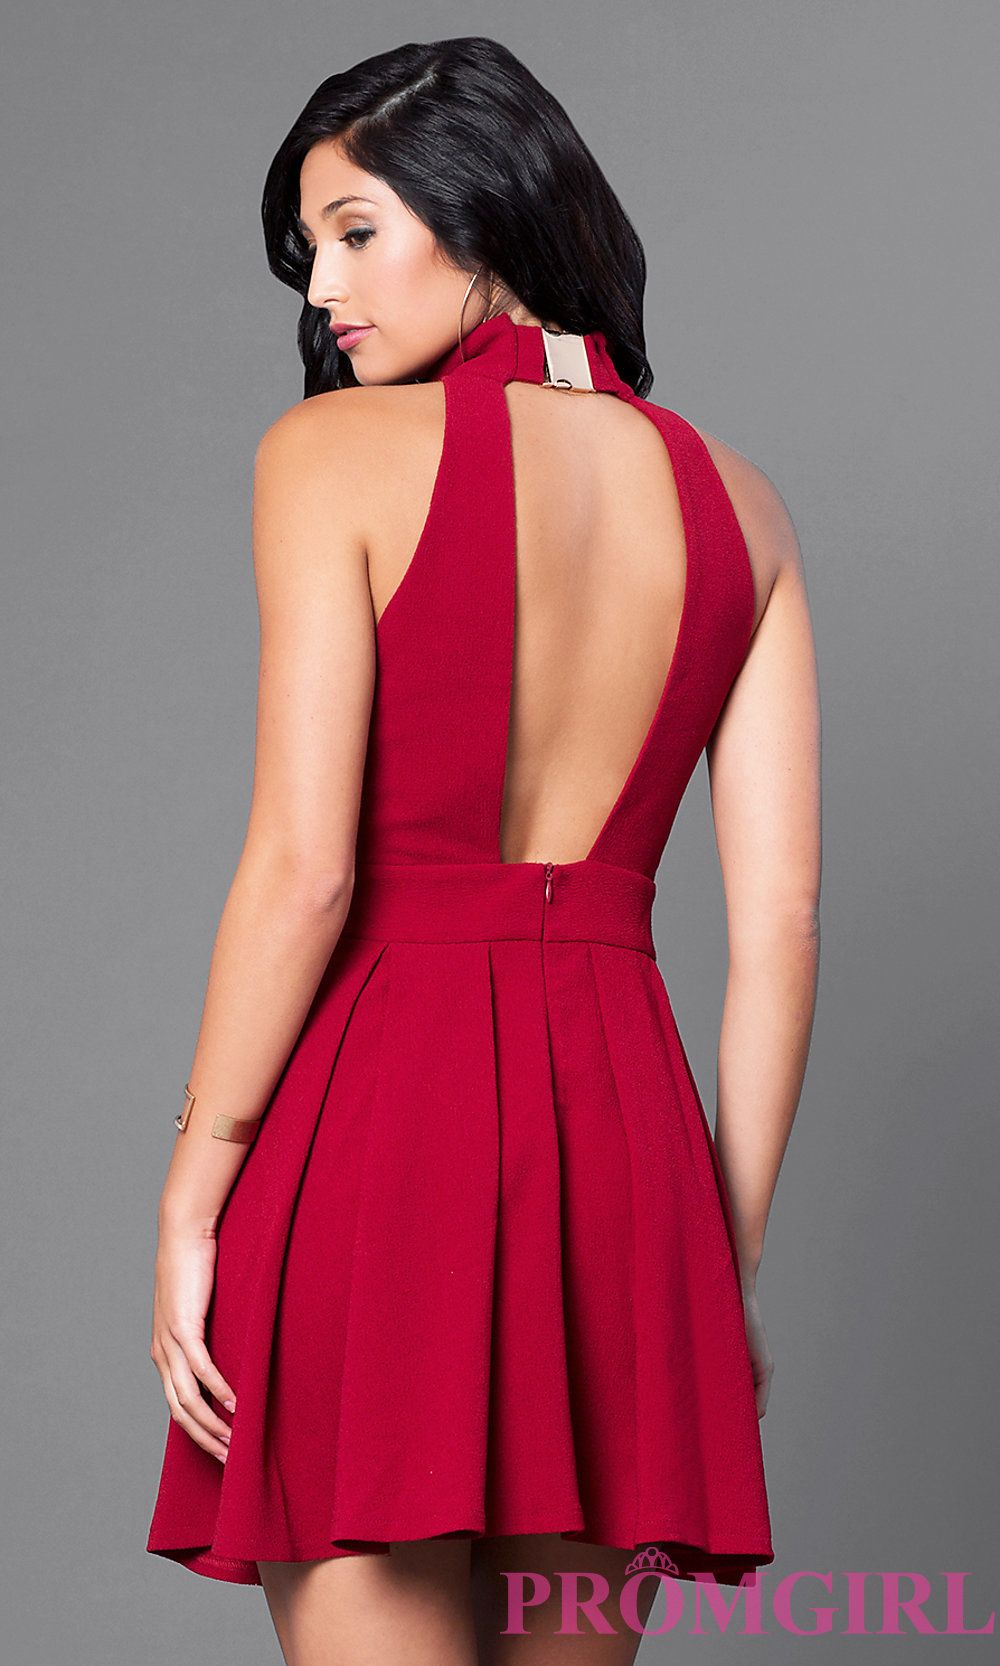 Openback short highneck homecoming party dress wedding guest